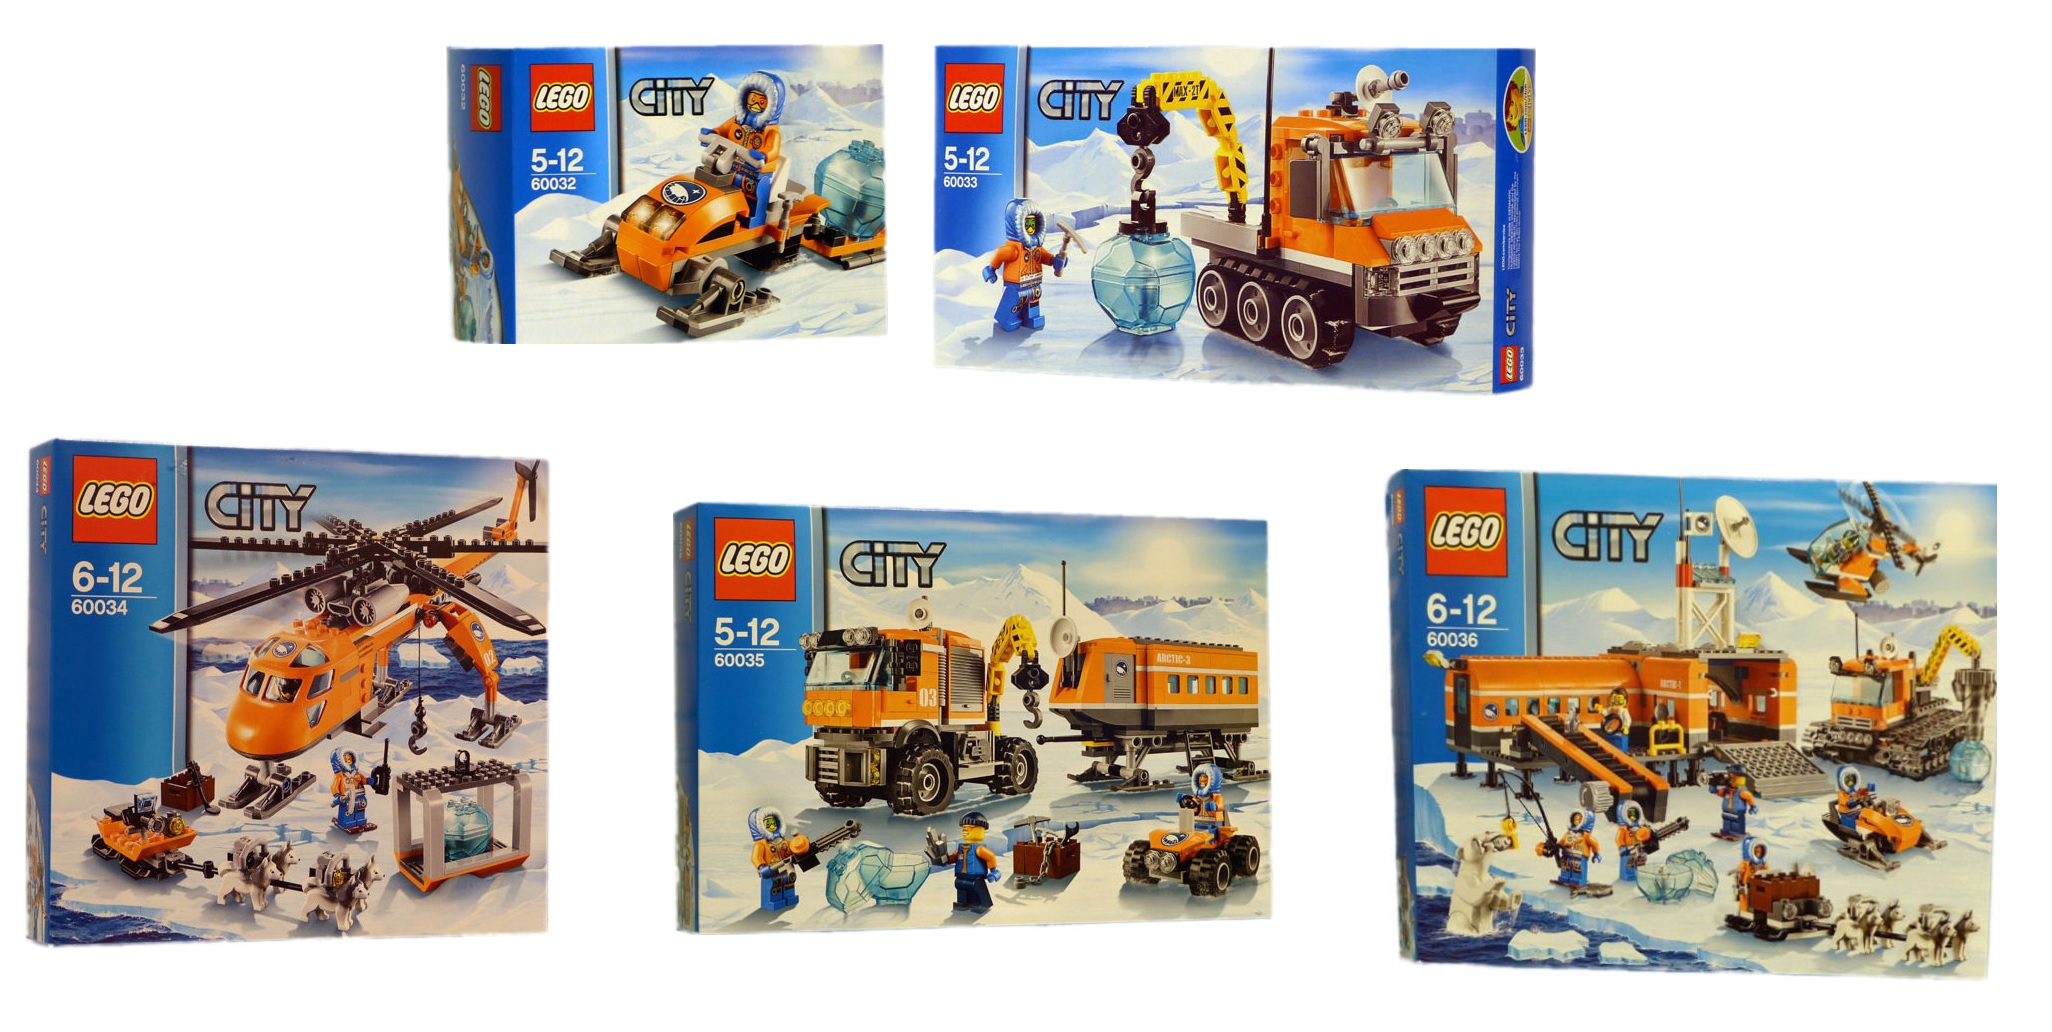 Pin lego 60032 city the lego summer wave in official images on - Lego City Arctic 2014 Sets 60032 60033 60034 60035 60036